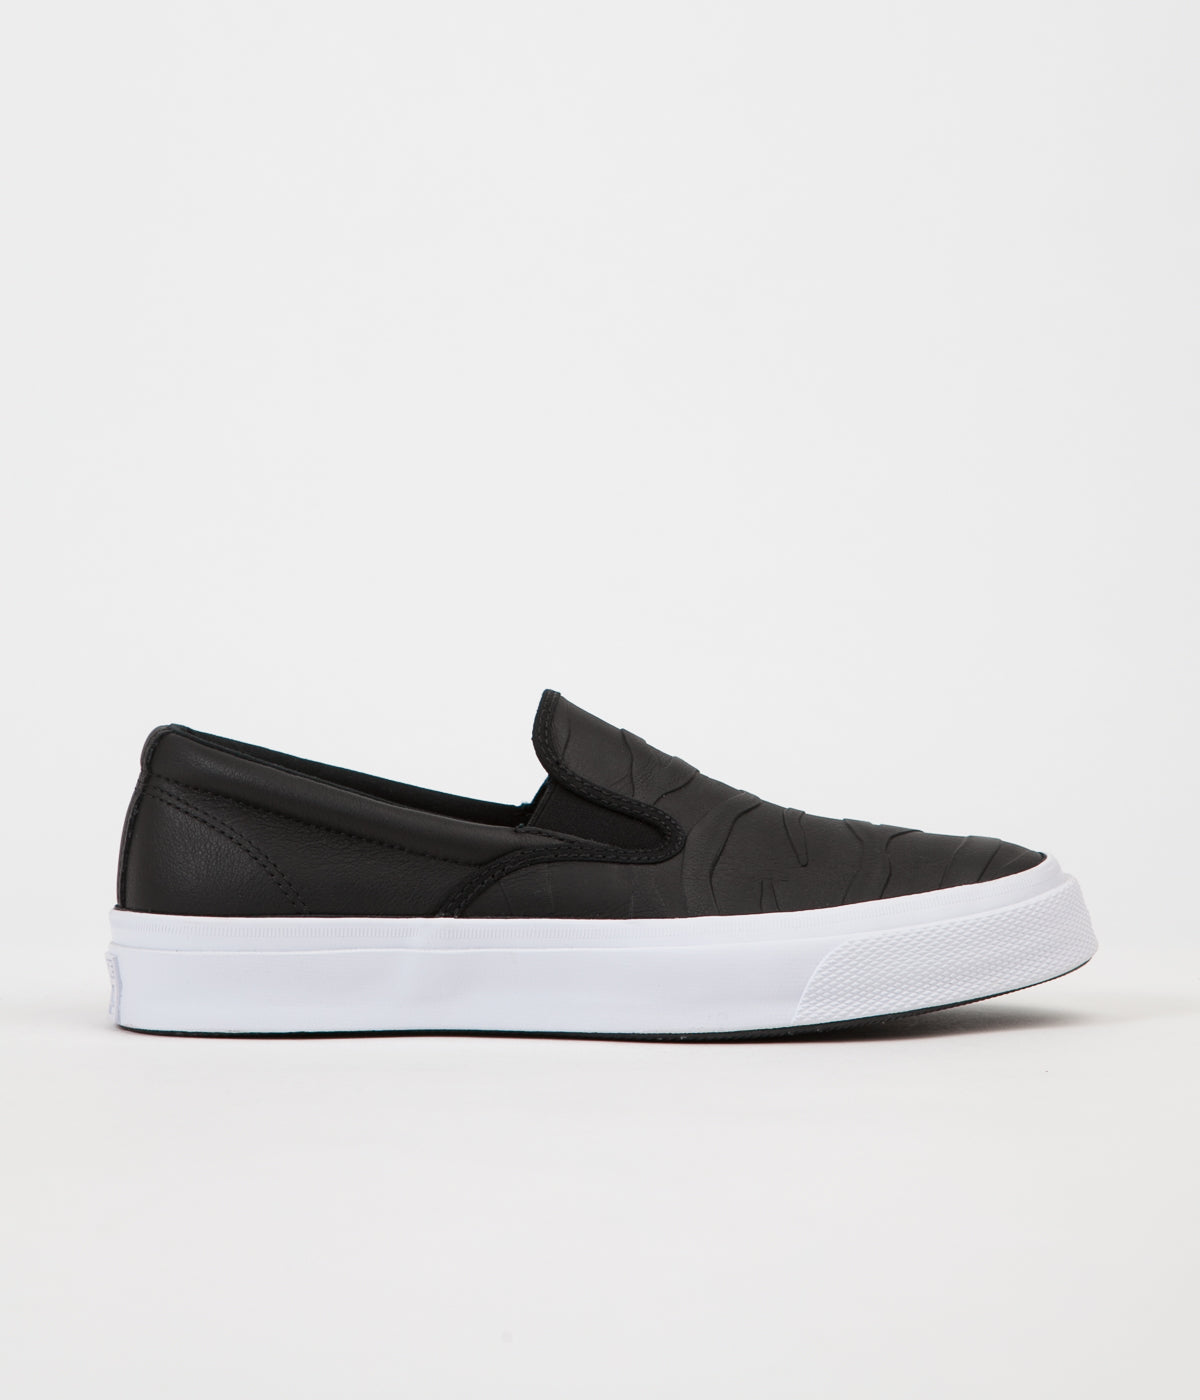 51022725ecf coupon code for adult converse all star laceless sneakers black white a1bf9  cdfd7  usa converse jason jesse 67 deckstar slip on shoes black a215f cadea